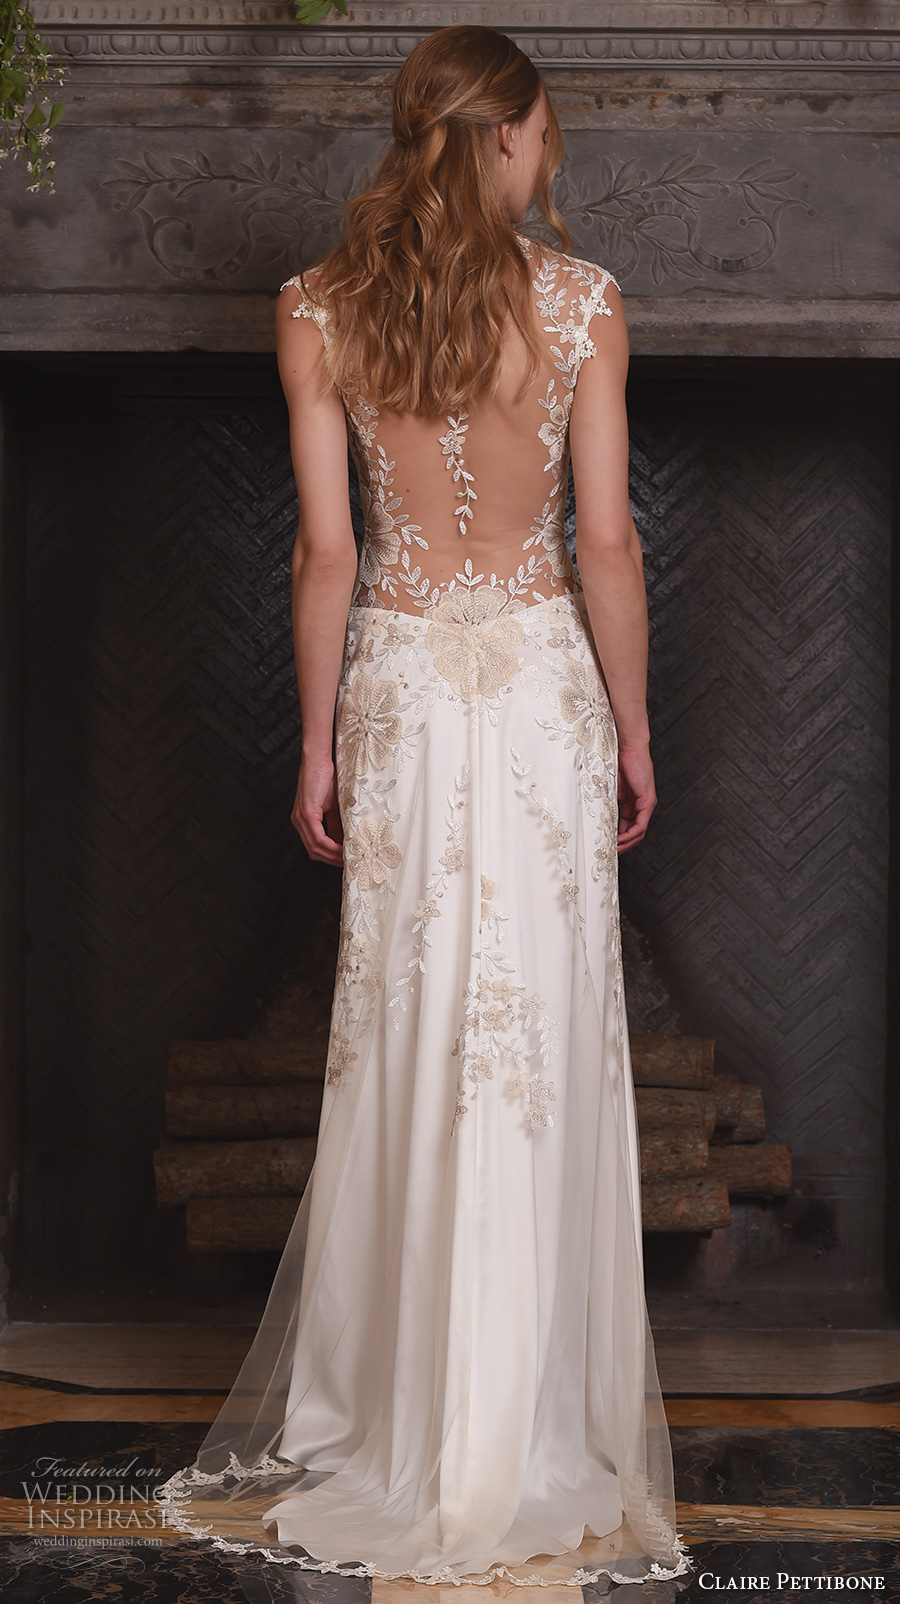 Claire pettibone fall 2017 wedding dresses crazyforus for Wedding dress claire pettibone